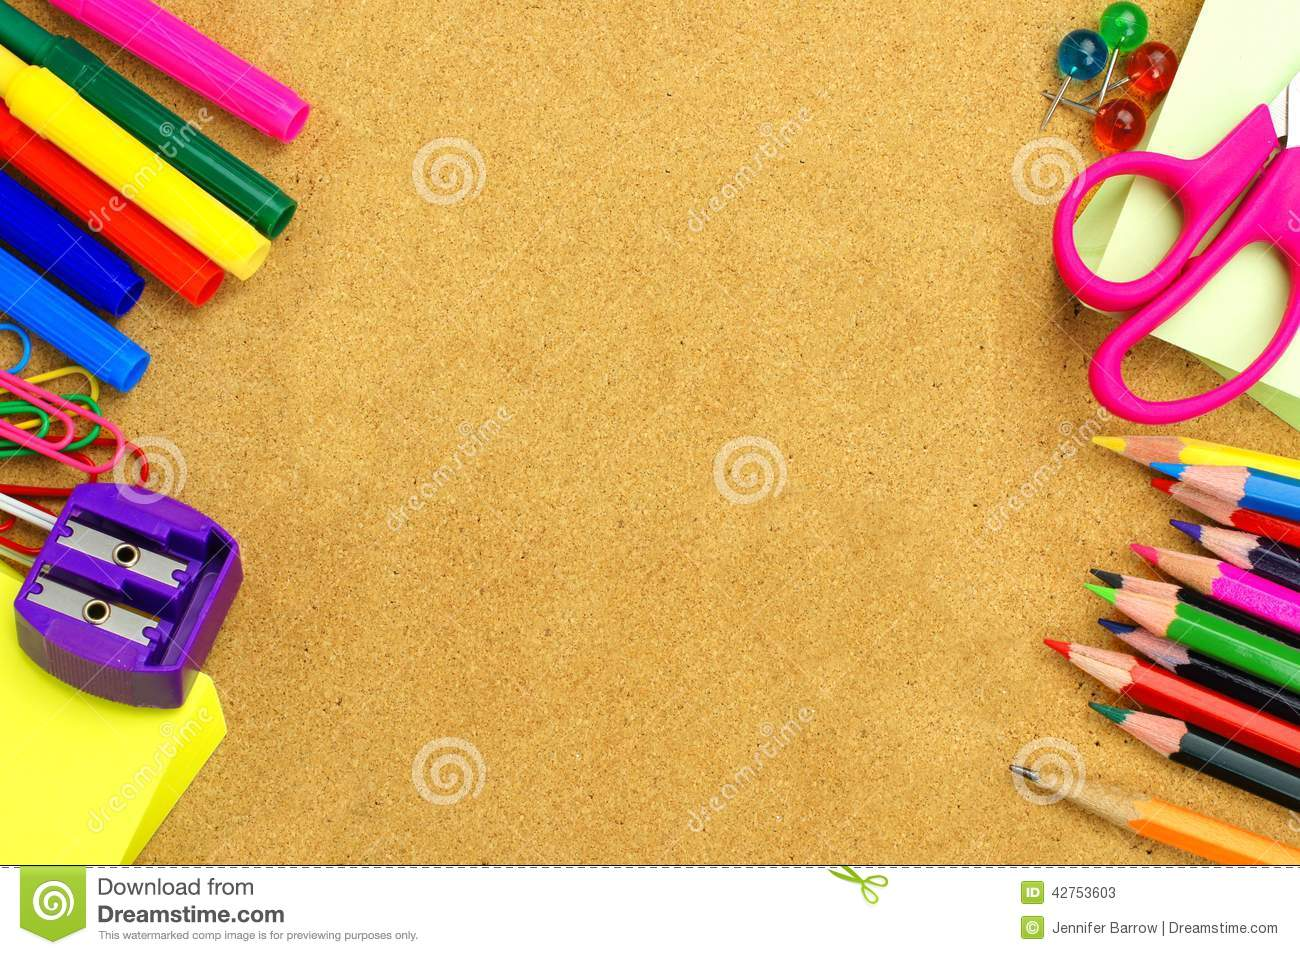 creative ideas to decorate picture frames - School Supplies And Bulletin Board Background Stock